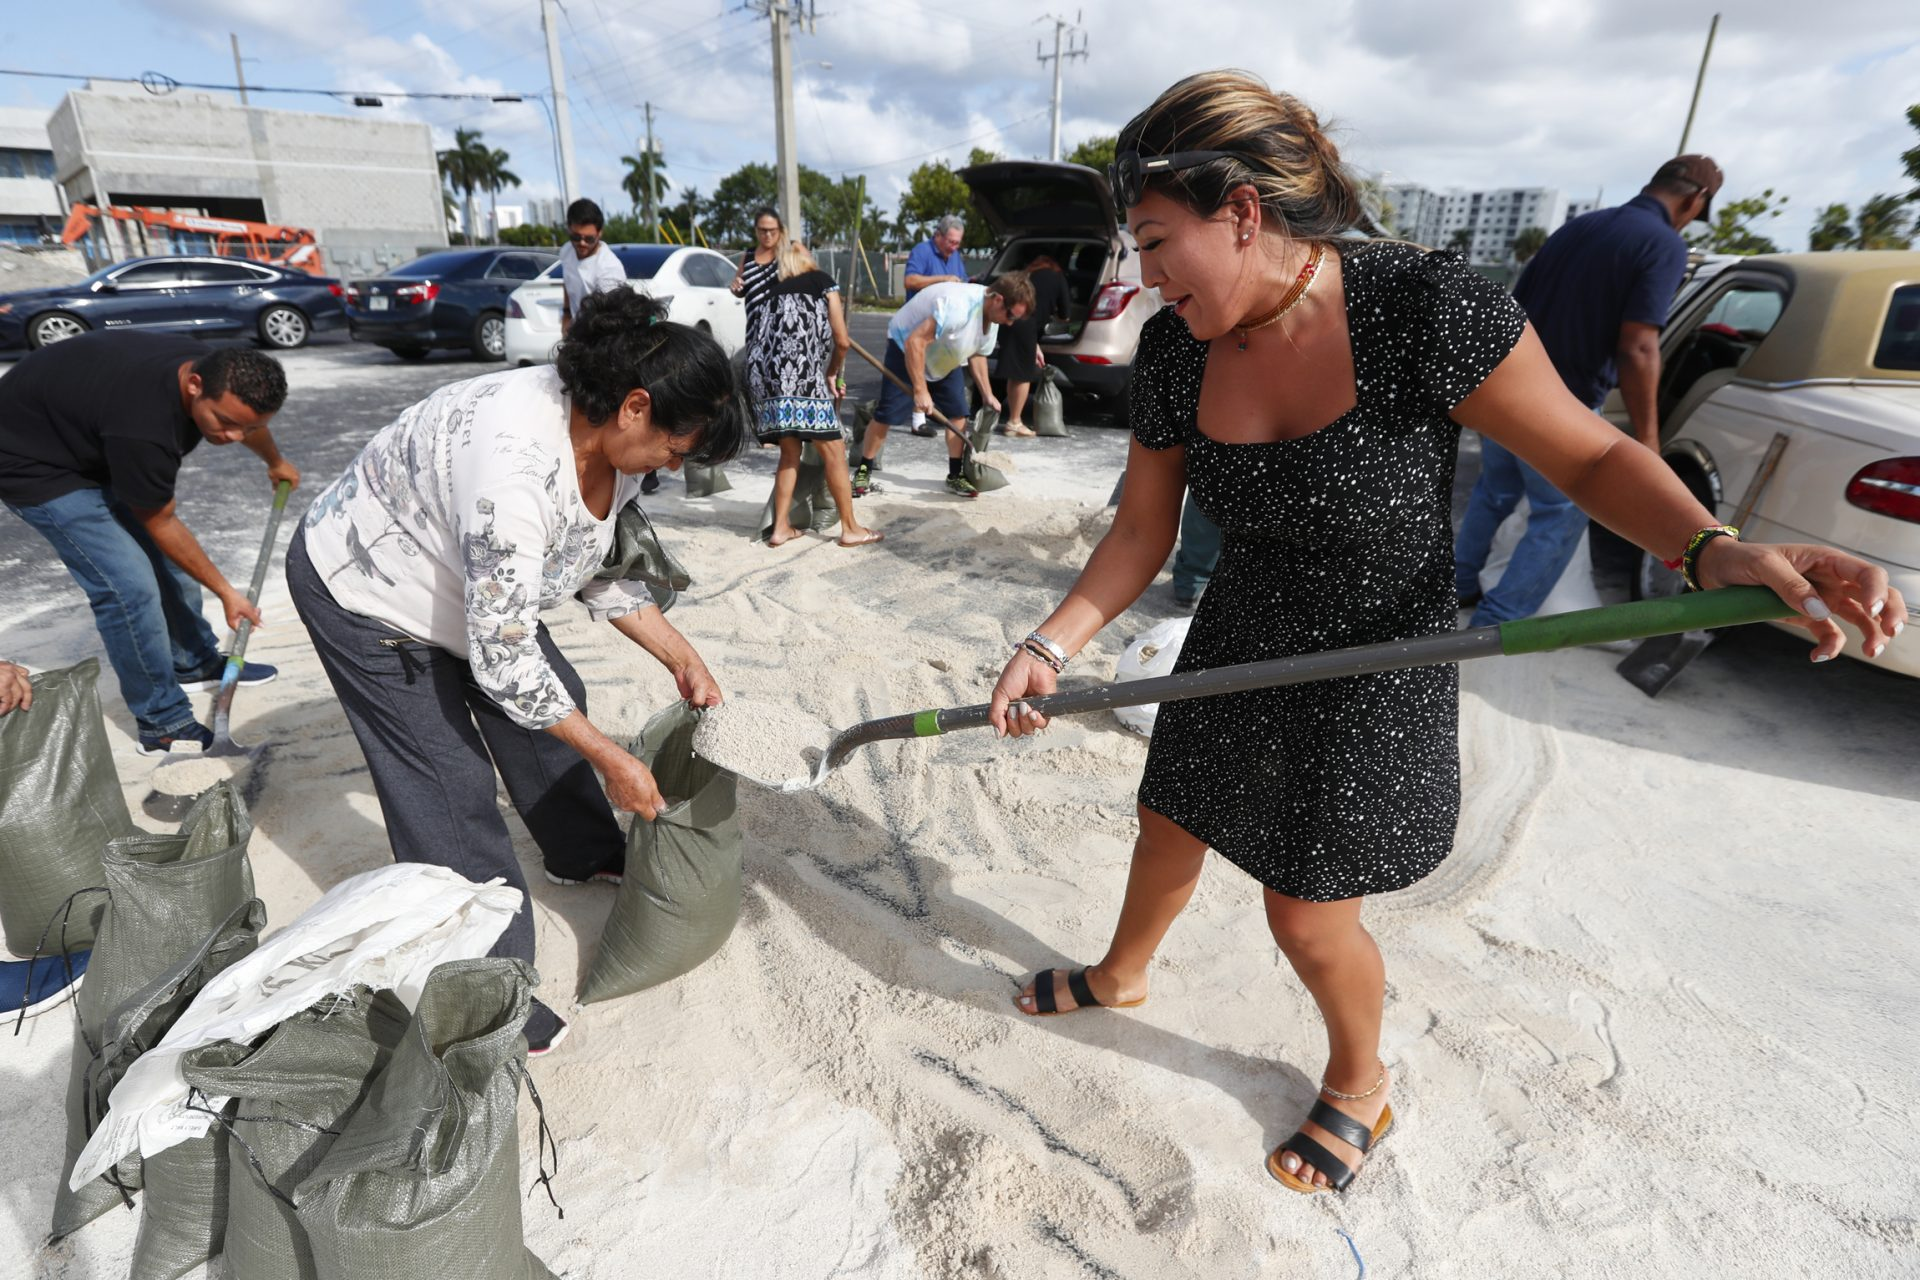 Georgia Bernard, right, and Ana Perez are among residents filling sandbags to take home in preparation for Hurricane Dorian, Friday, Aug. 30, 2019, in Hallandale Beach, Fla., as the town allowed residents to fill up sandbags until they ran out. All of Florida is under a state of emergency and authorities are urging residents to stockpile a week's worth of food and supplies as Hurricane Dorian gathers strength and aims to slam the state as soon as Monday as a Category 4 storm.